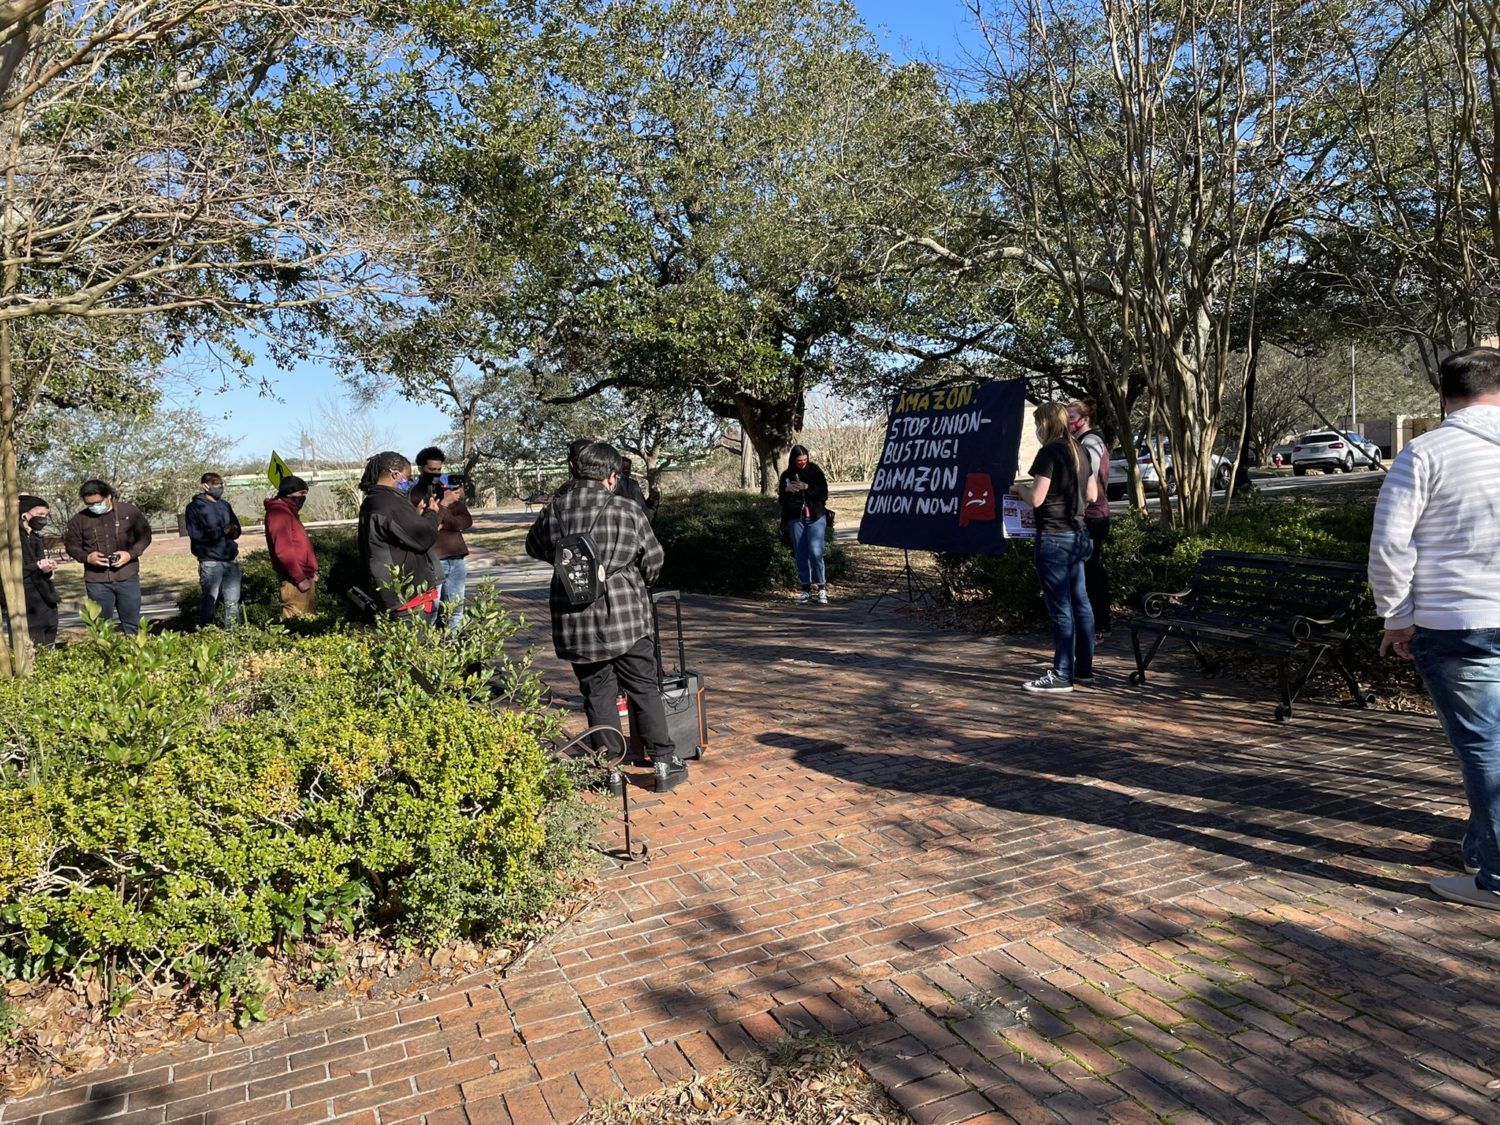 Pensacola-Florida-Amazon-workers-support-protest-022021-1, Black Workers Matter! Nationwide protests supporting Amazon workers in Alabama from the Bay to Harlem, National News & Views Photo Gallery